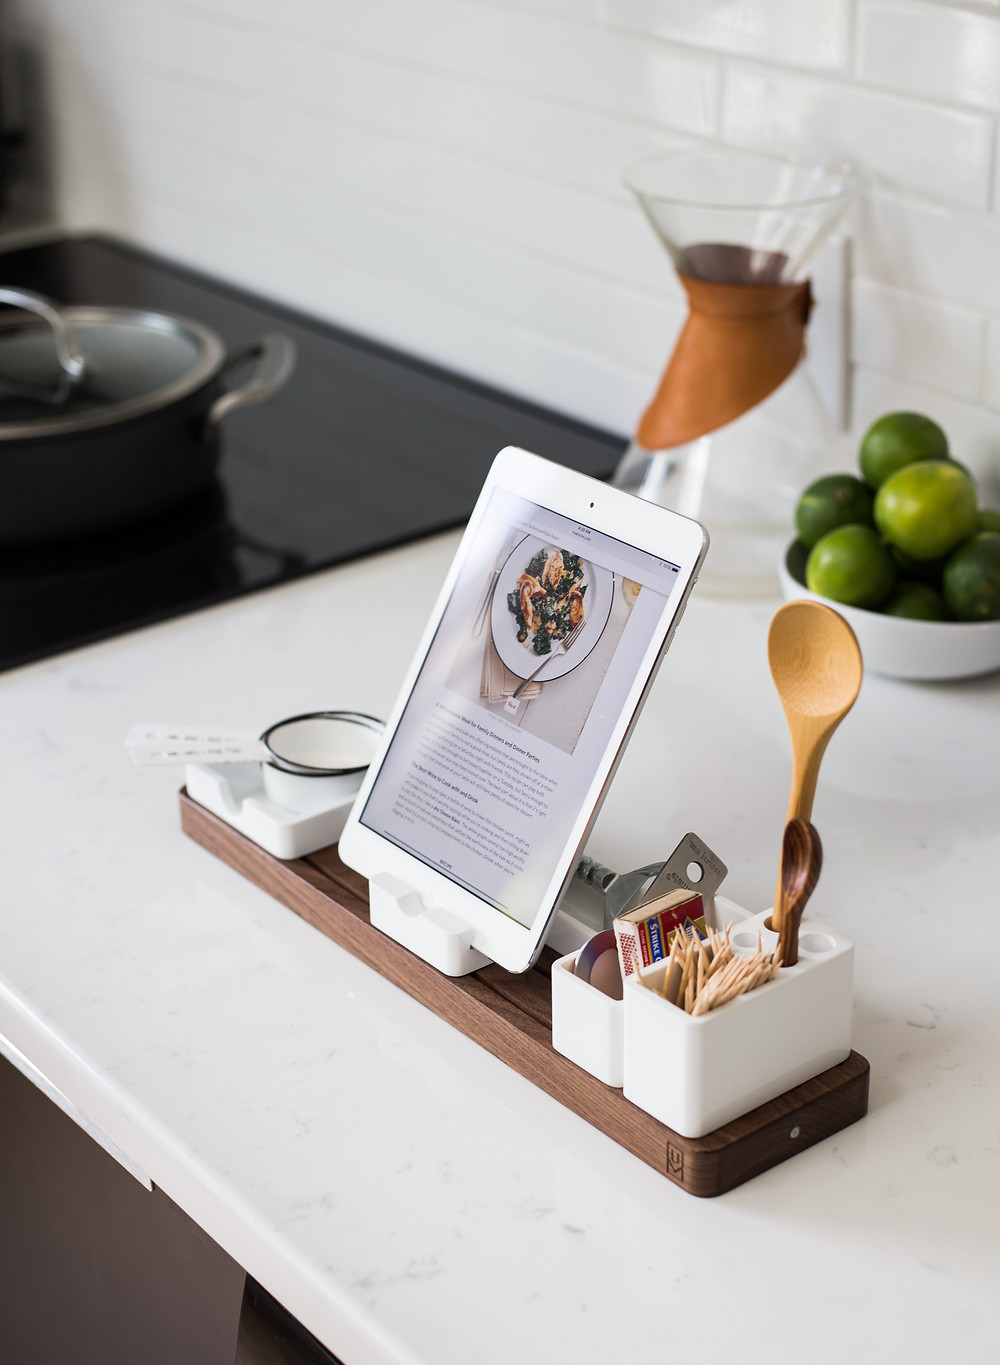 An iPad, with a cooking blog on screen, set on a stand with cooking tools